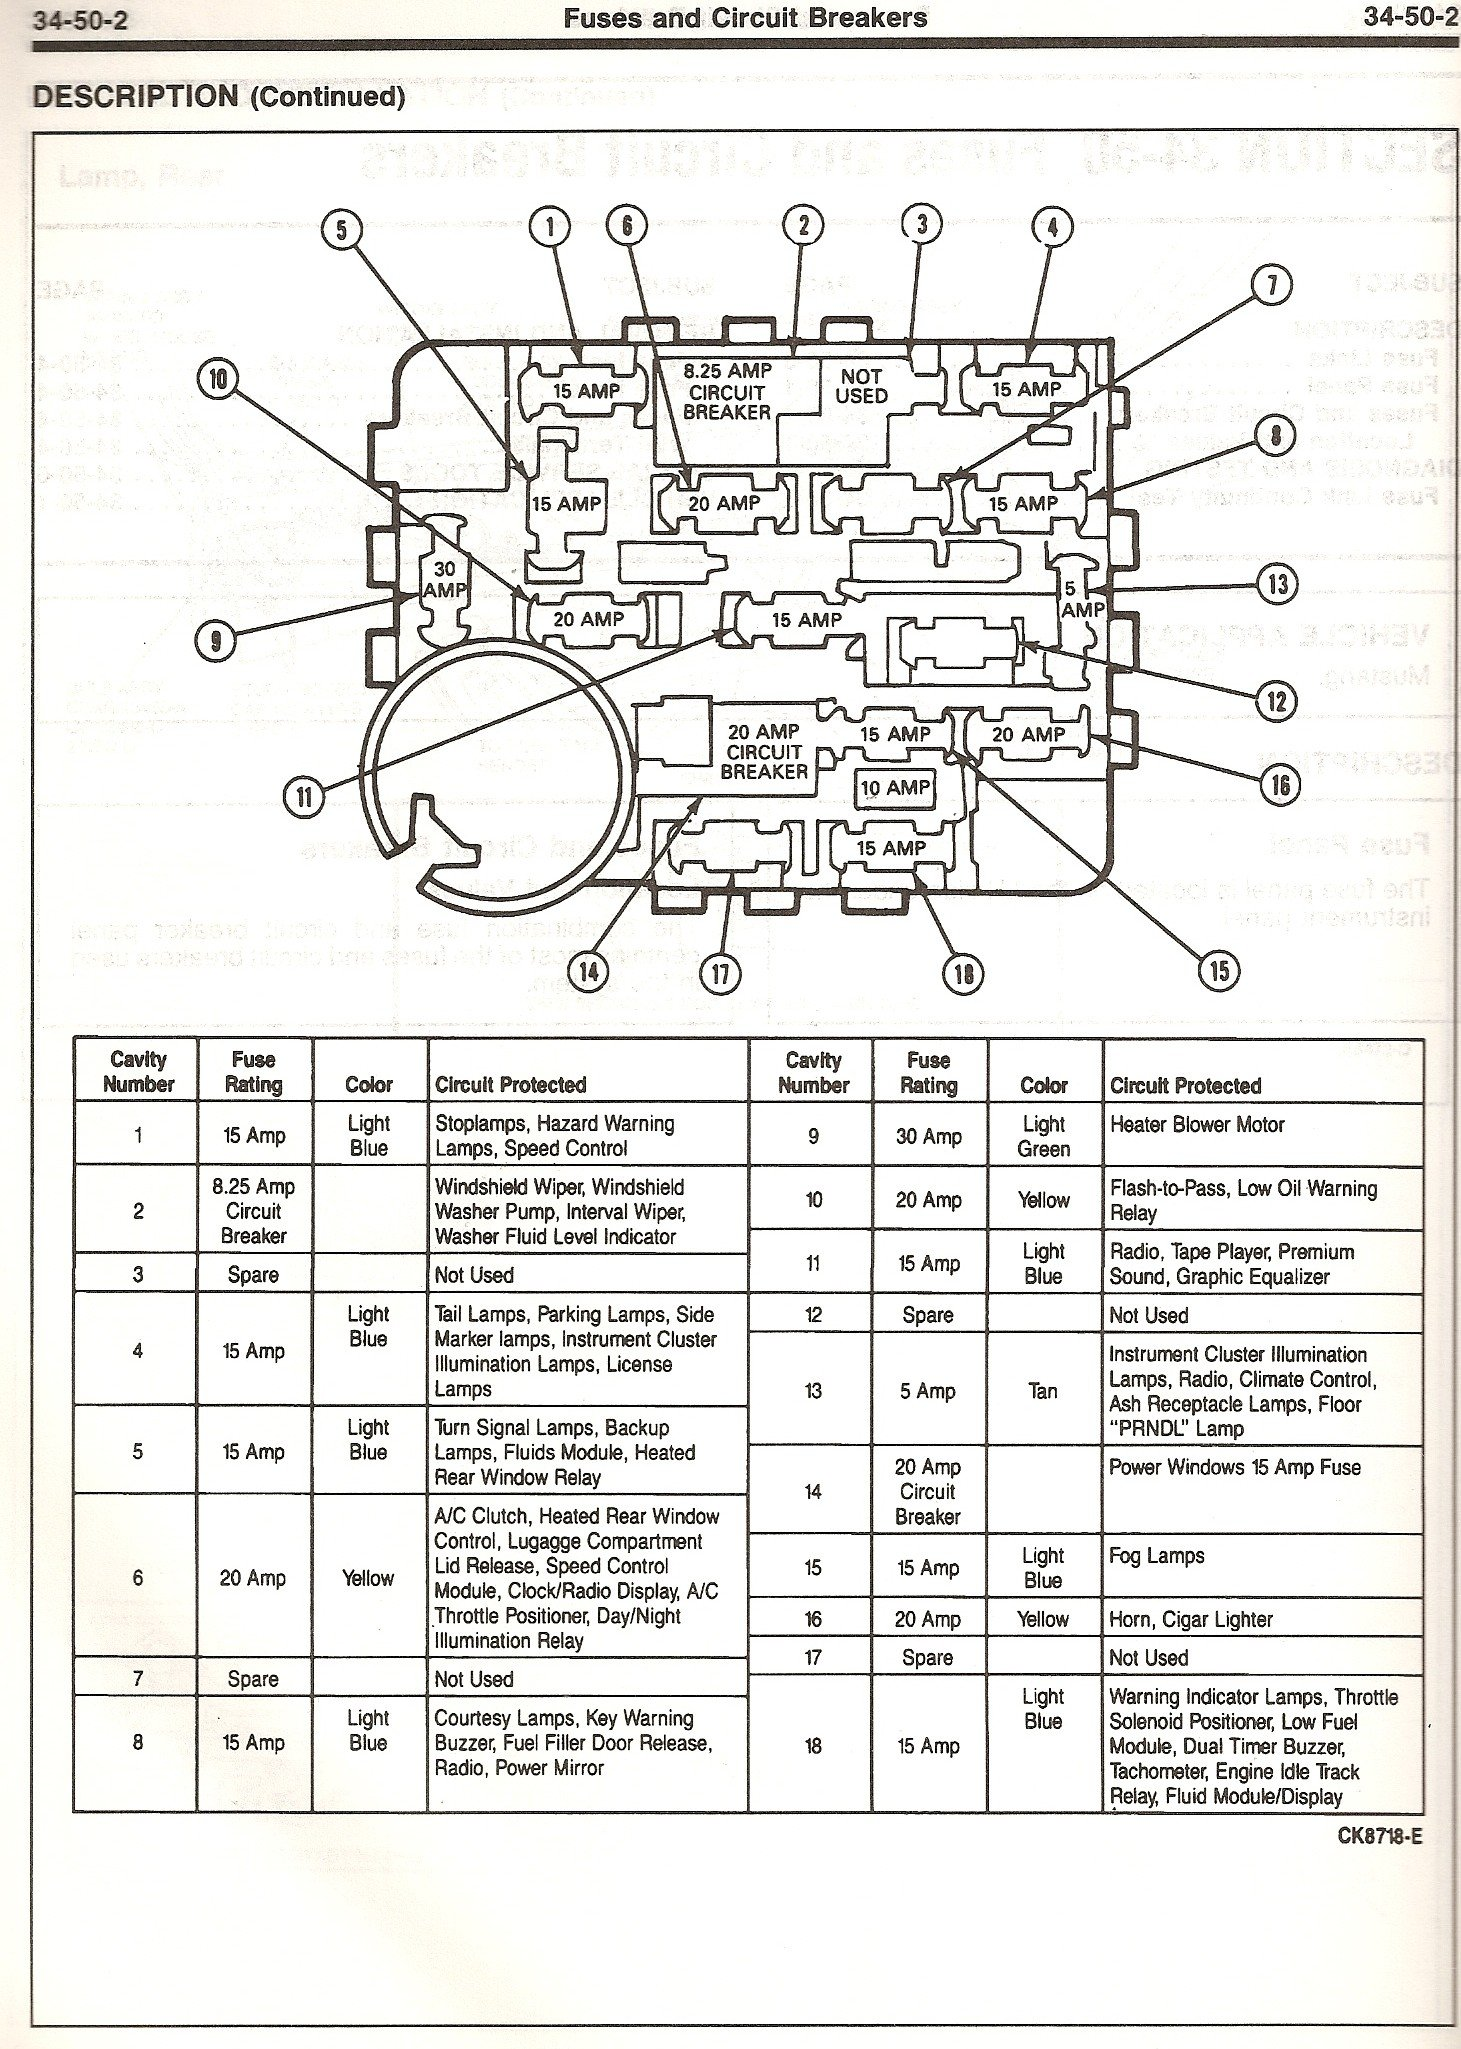 1969 mustang fuse box wiring schematics diagram rh enr green com 2014 Ford Expedition Fuse Box Diagram Ford Focus Fuse Box Diagram